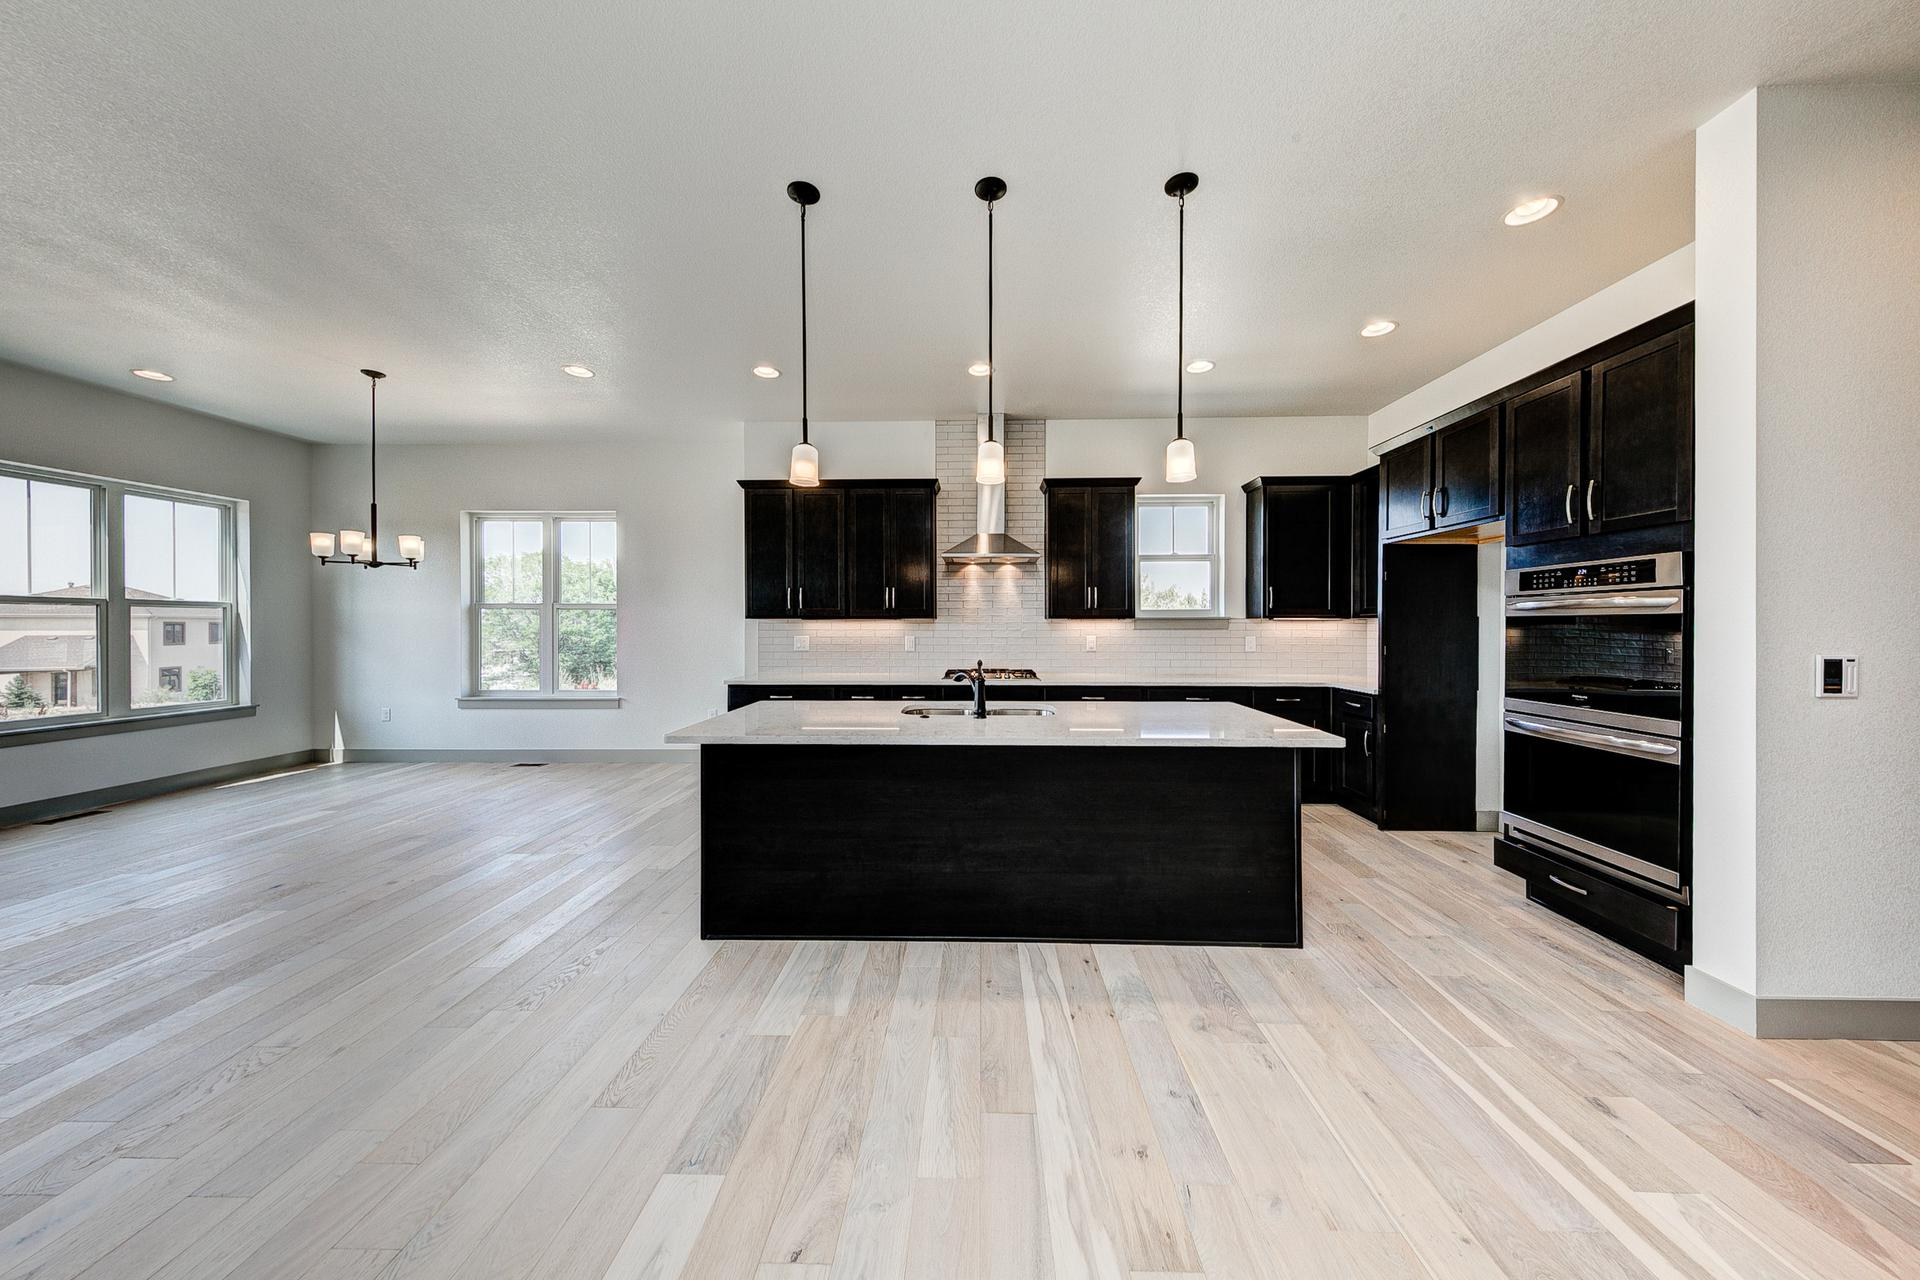 Kitchen - Not Actual Home - Finishes Will Vary . 2br New Home in Windsor, CO